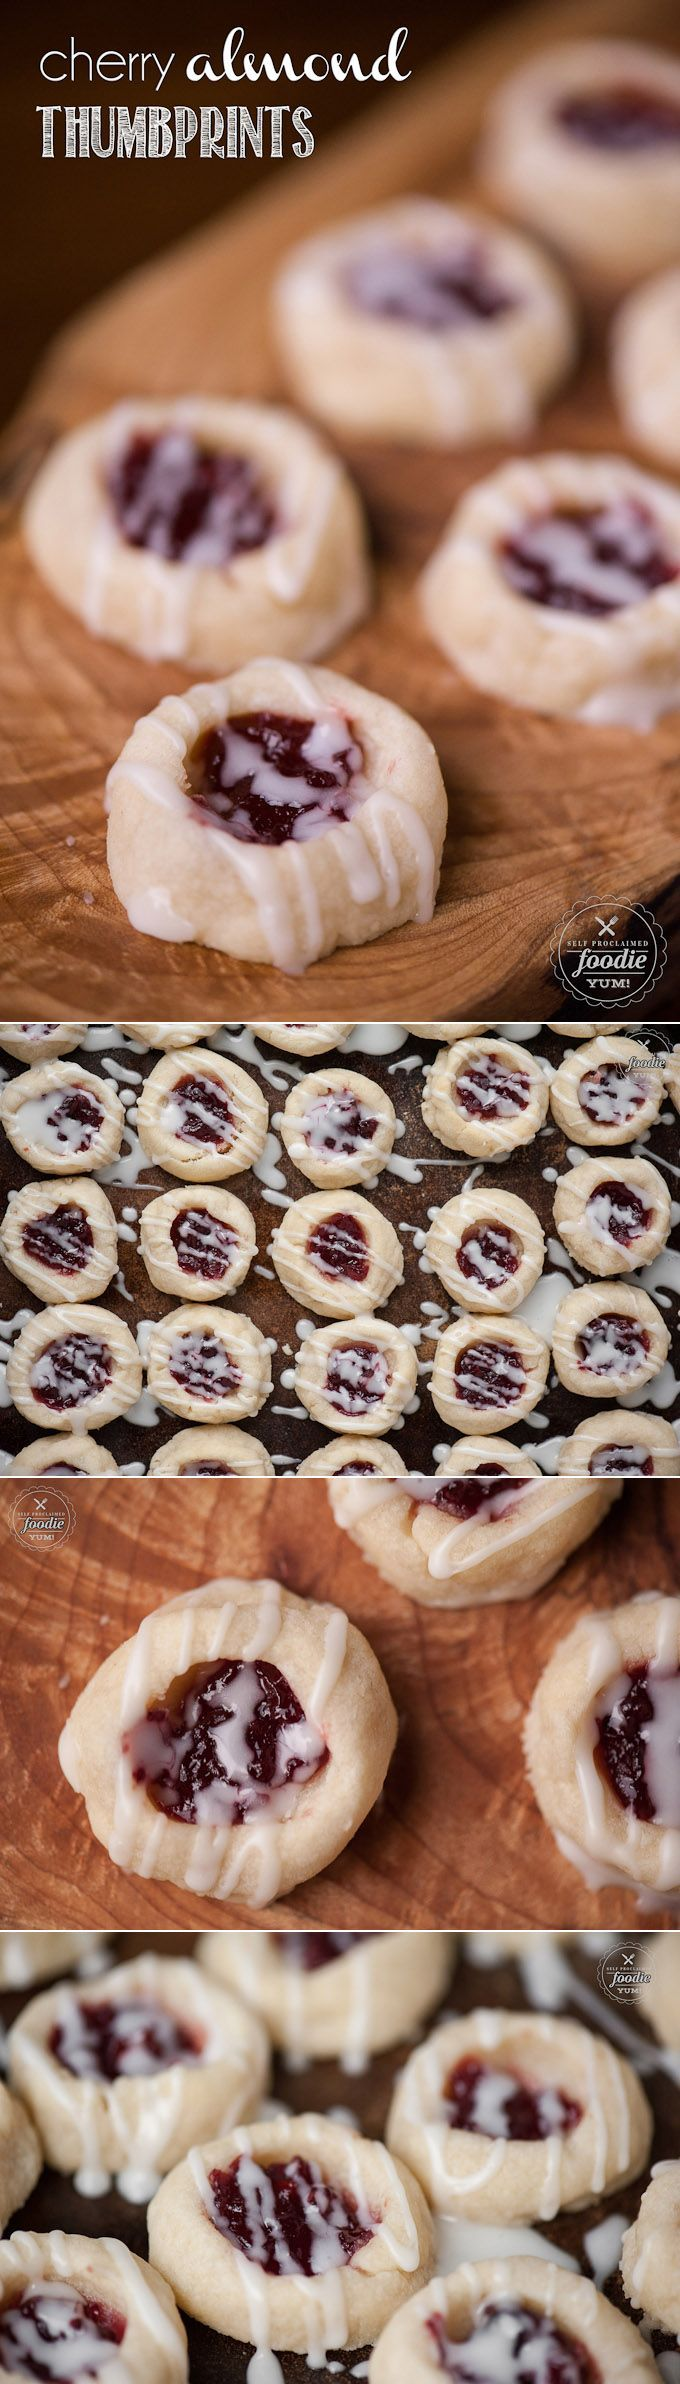 Cherry Almond Thumbprints - Pairs the delicious flavors of cherry preserves and almond to make a buttery shortbread cookie that is perfect for the holidays.